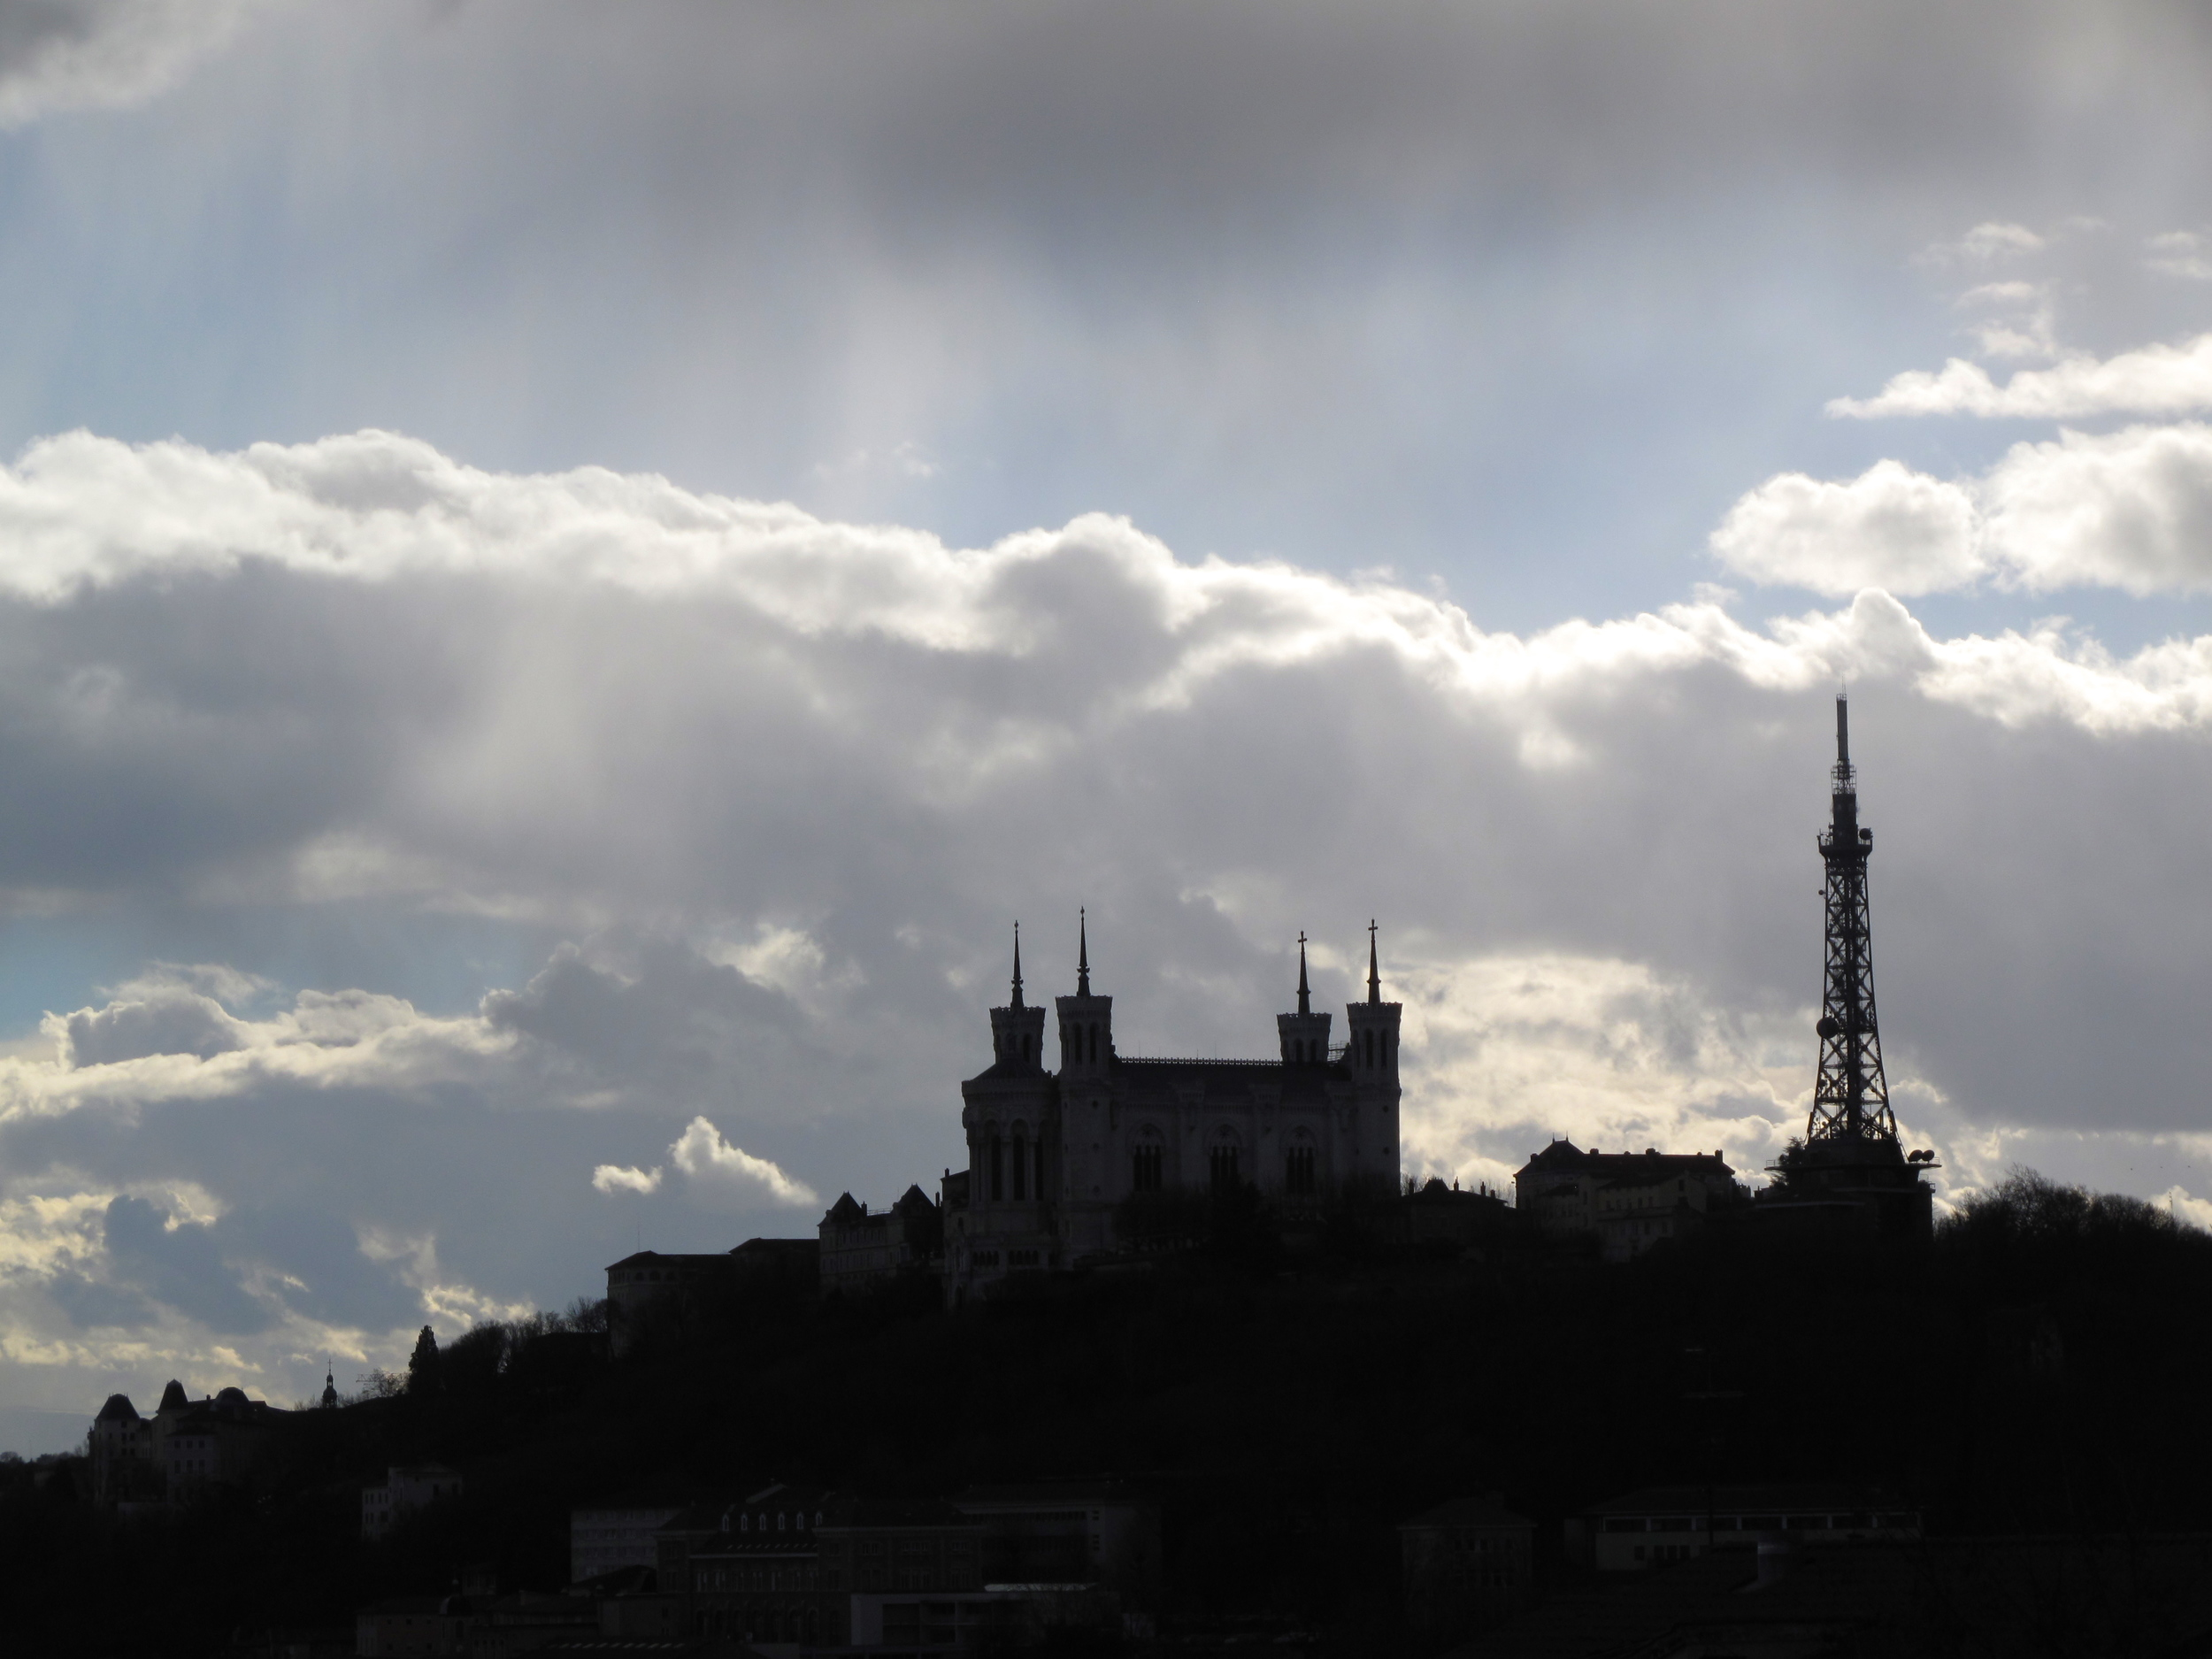 The view of Fourvière from the Croix Rousse in Lyon